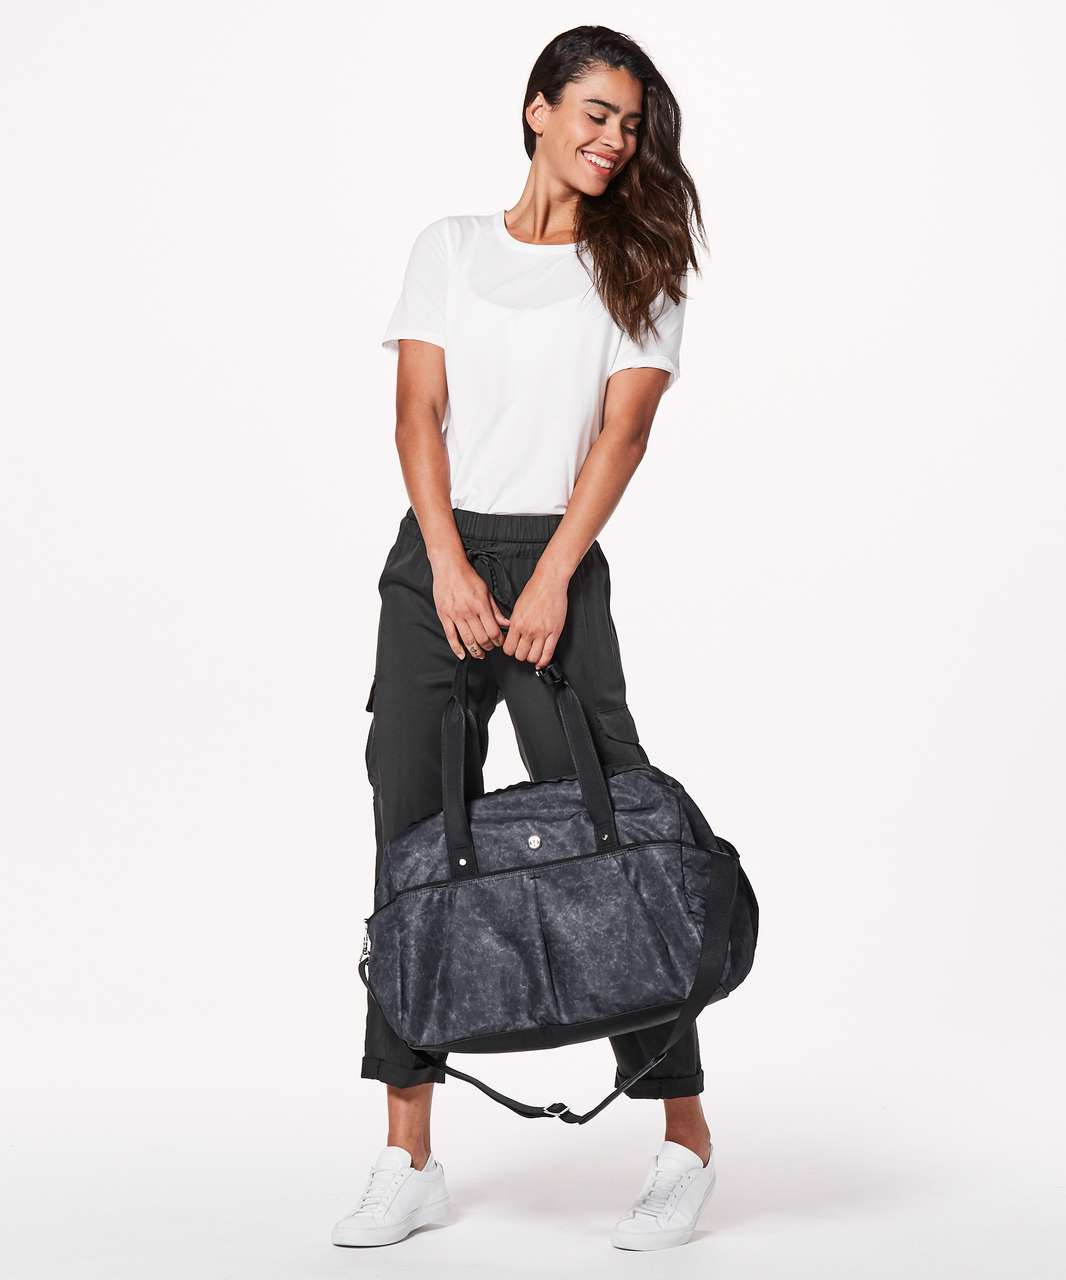 Lululemon All Day Duffel *Heatproof Pocket 31L - Gravel Dust Ice Grey Nebula / Black